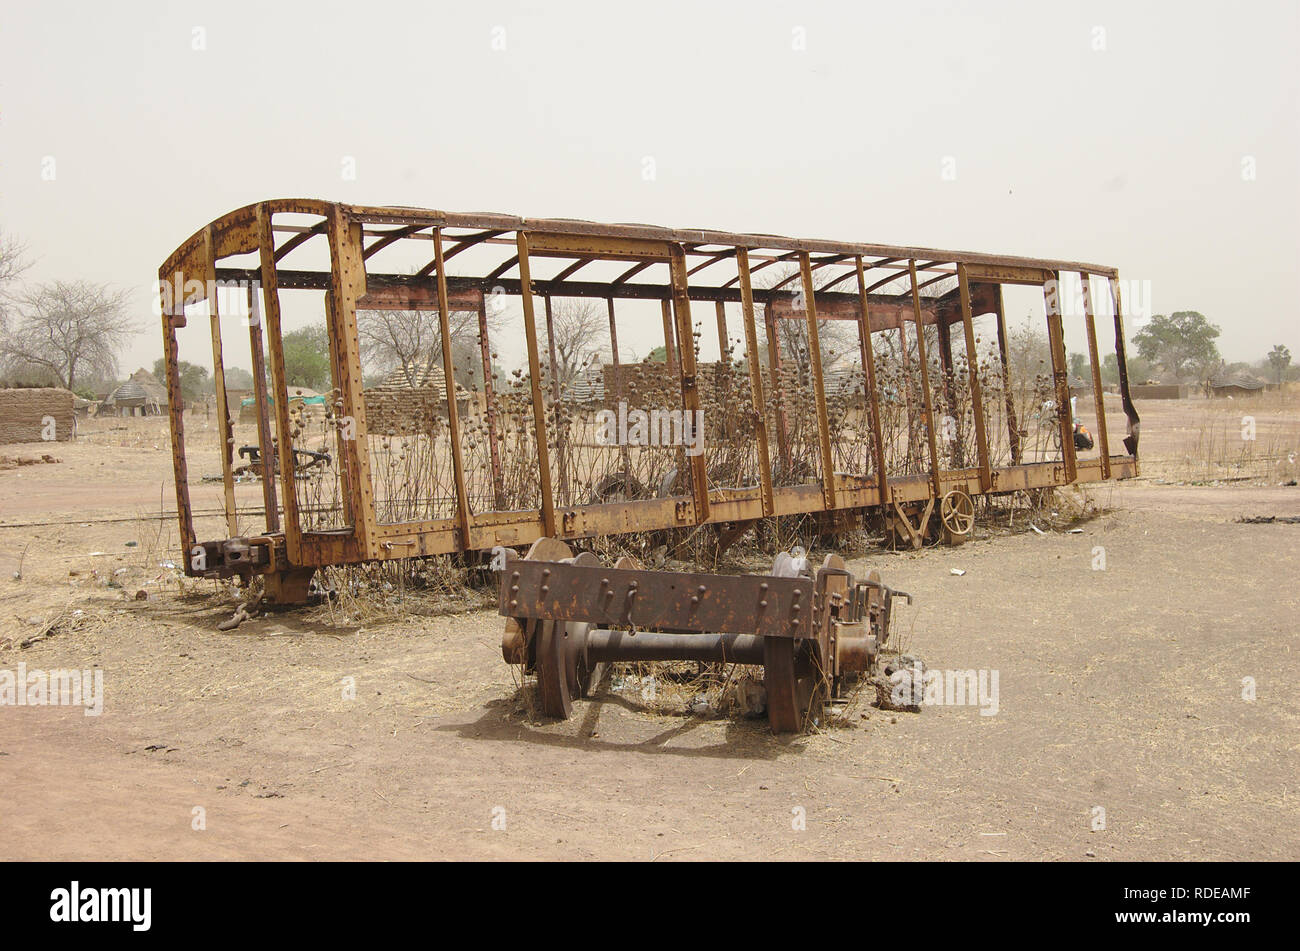 Rusting Train Carriage in South Sudan - Stock Image